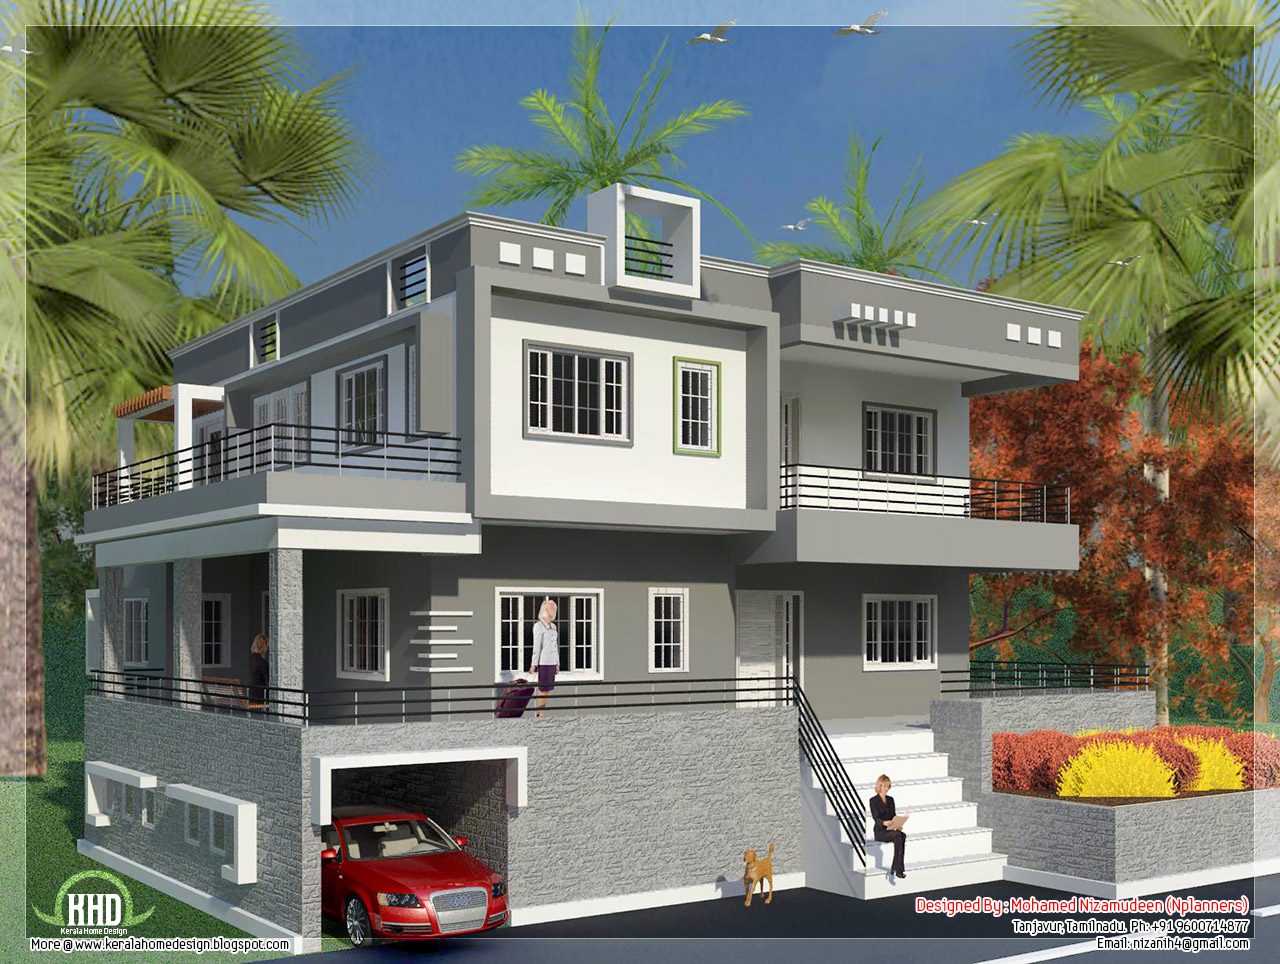 Indian Home Design: North Indian Style Minimalist House Exterior Design